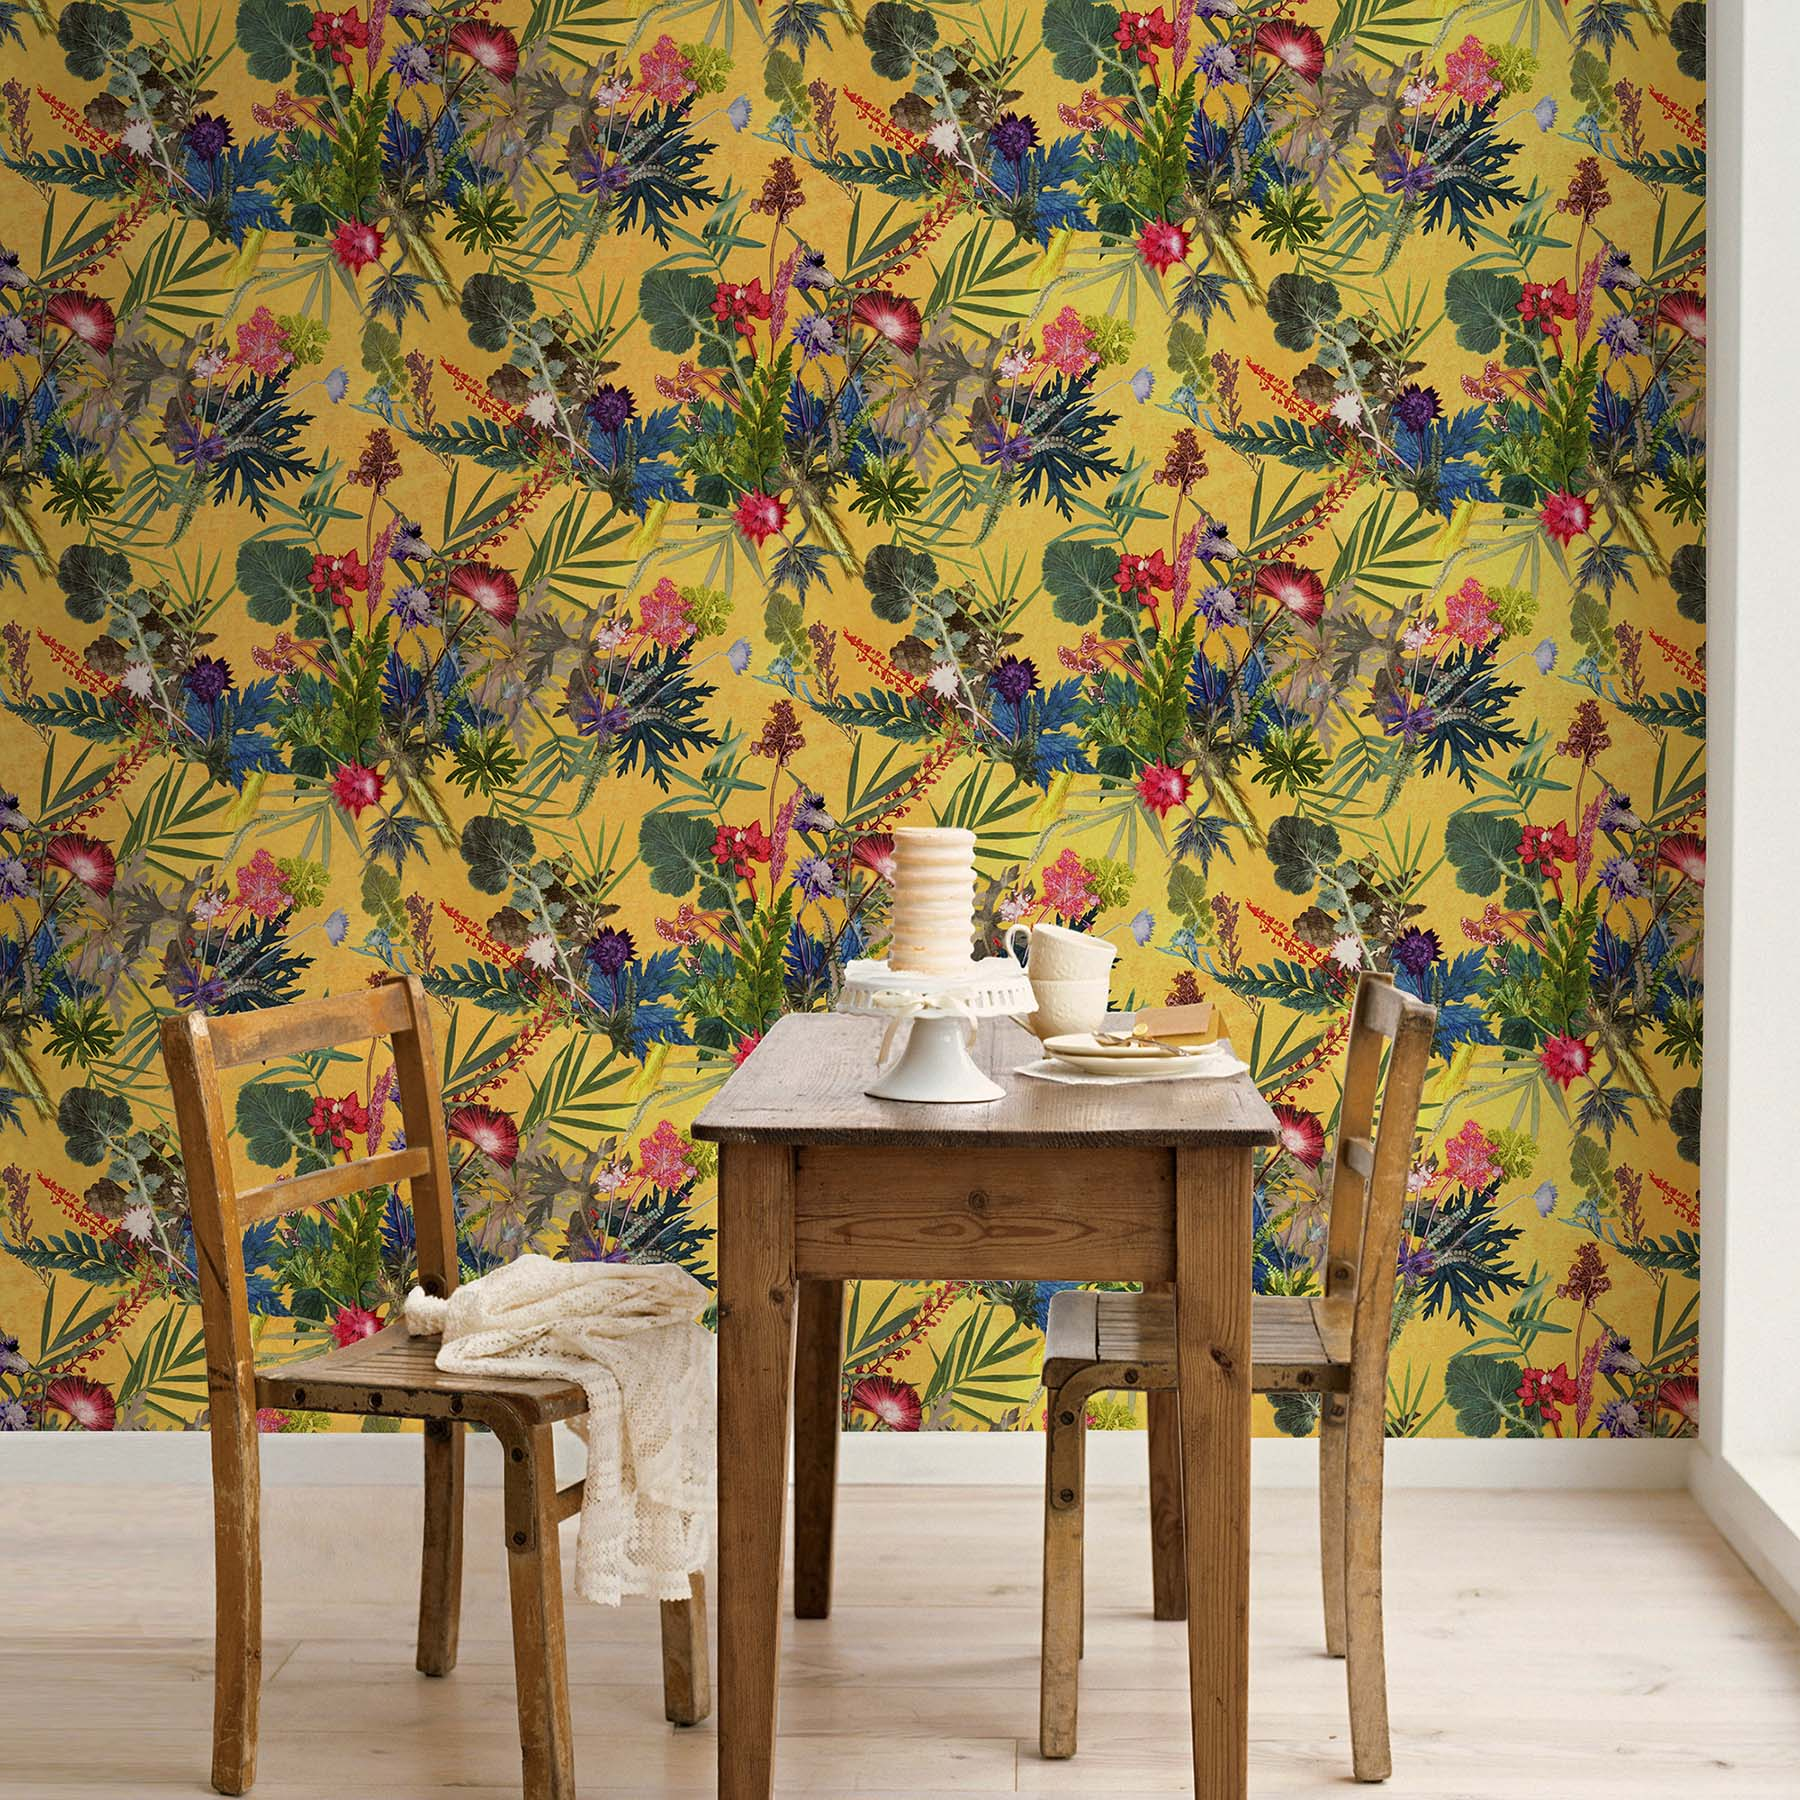 Summer Tropics | Green & Yellow Designer Wallpaper, Tropical Style